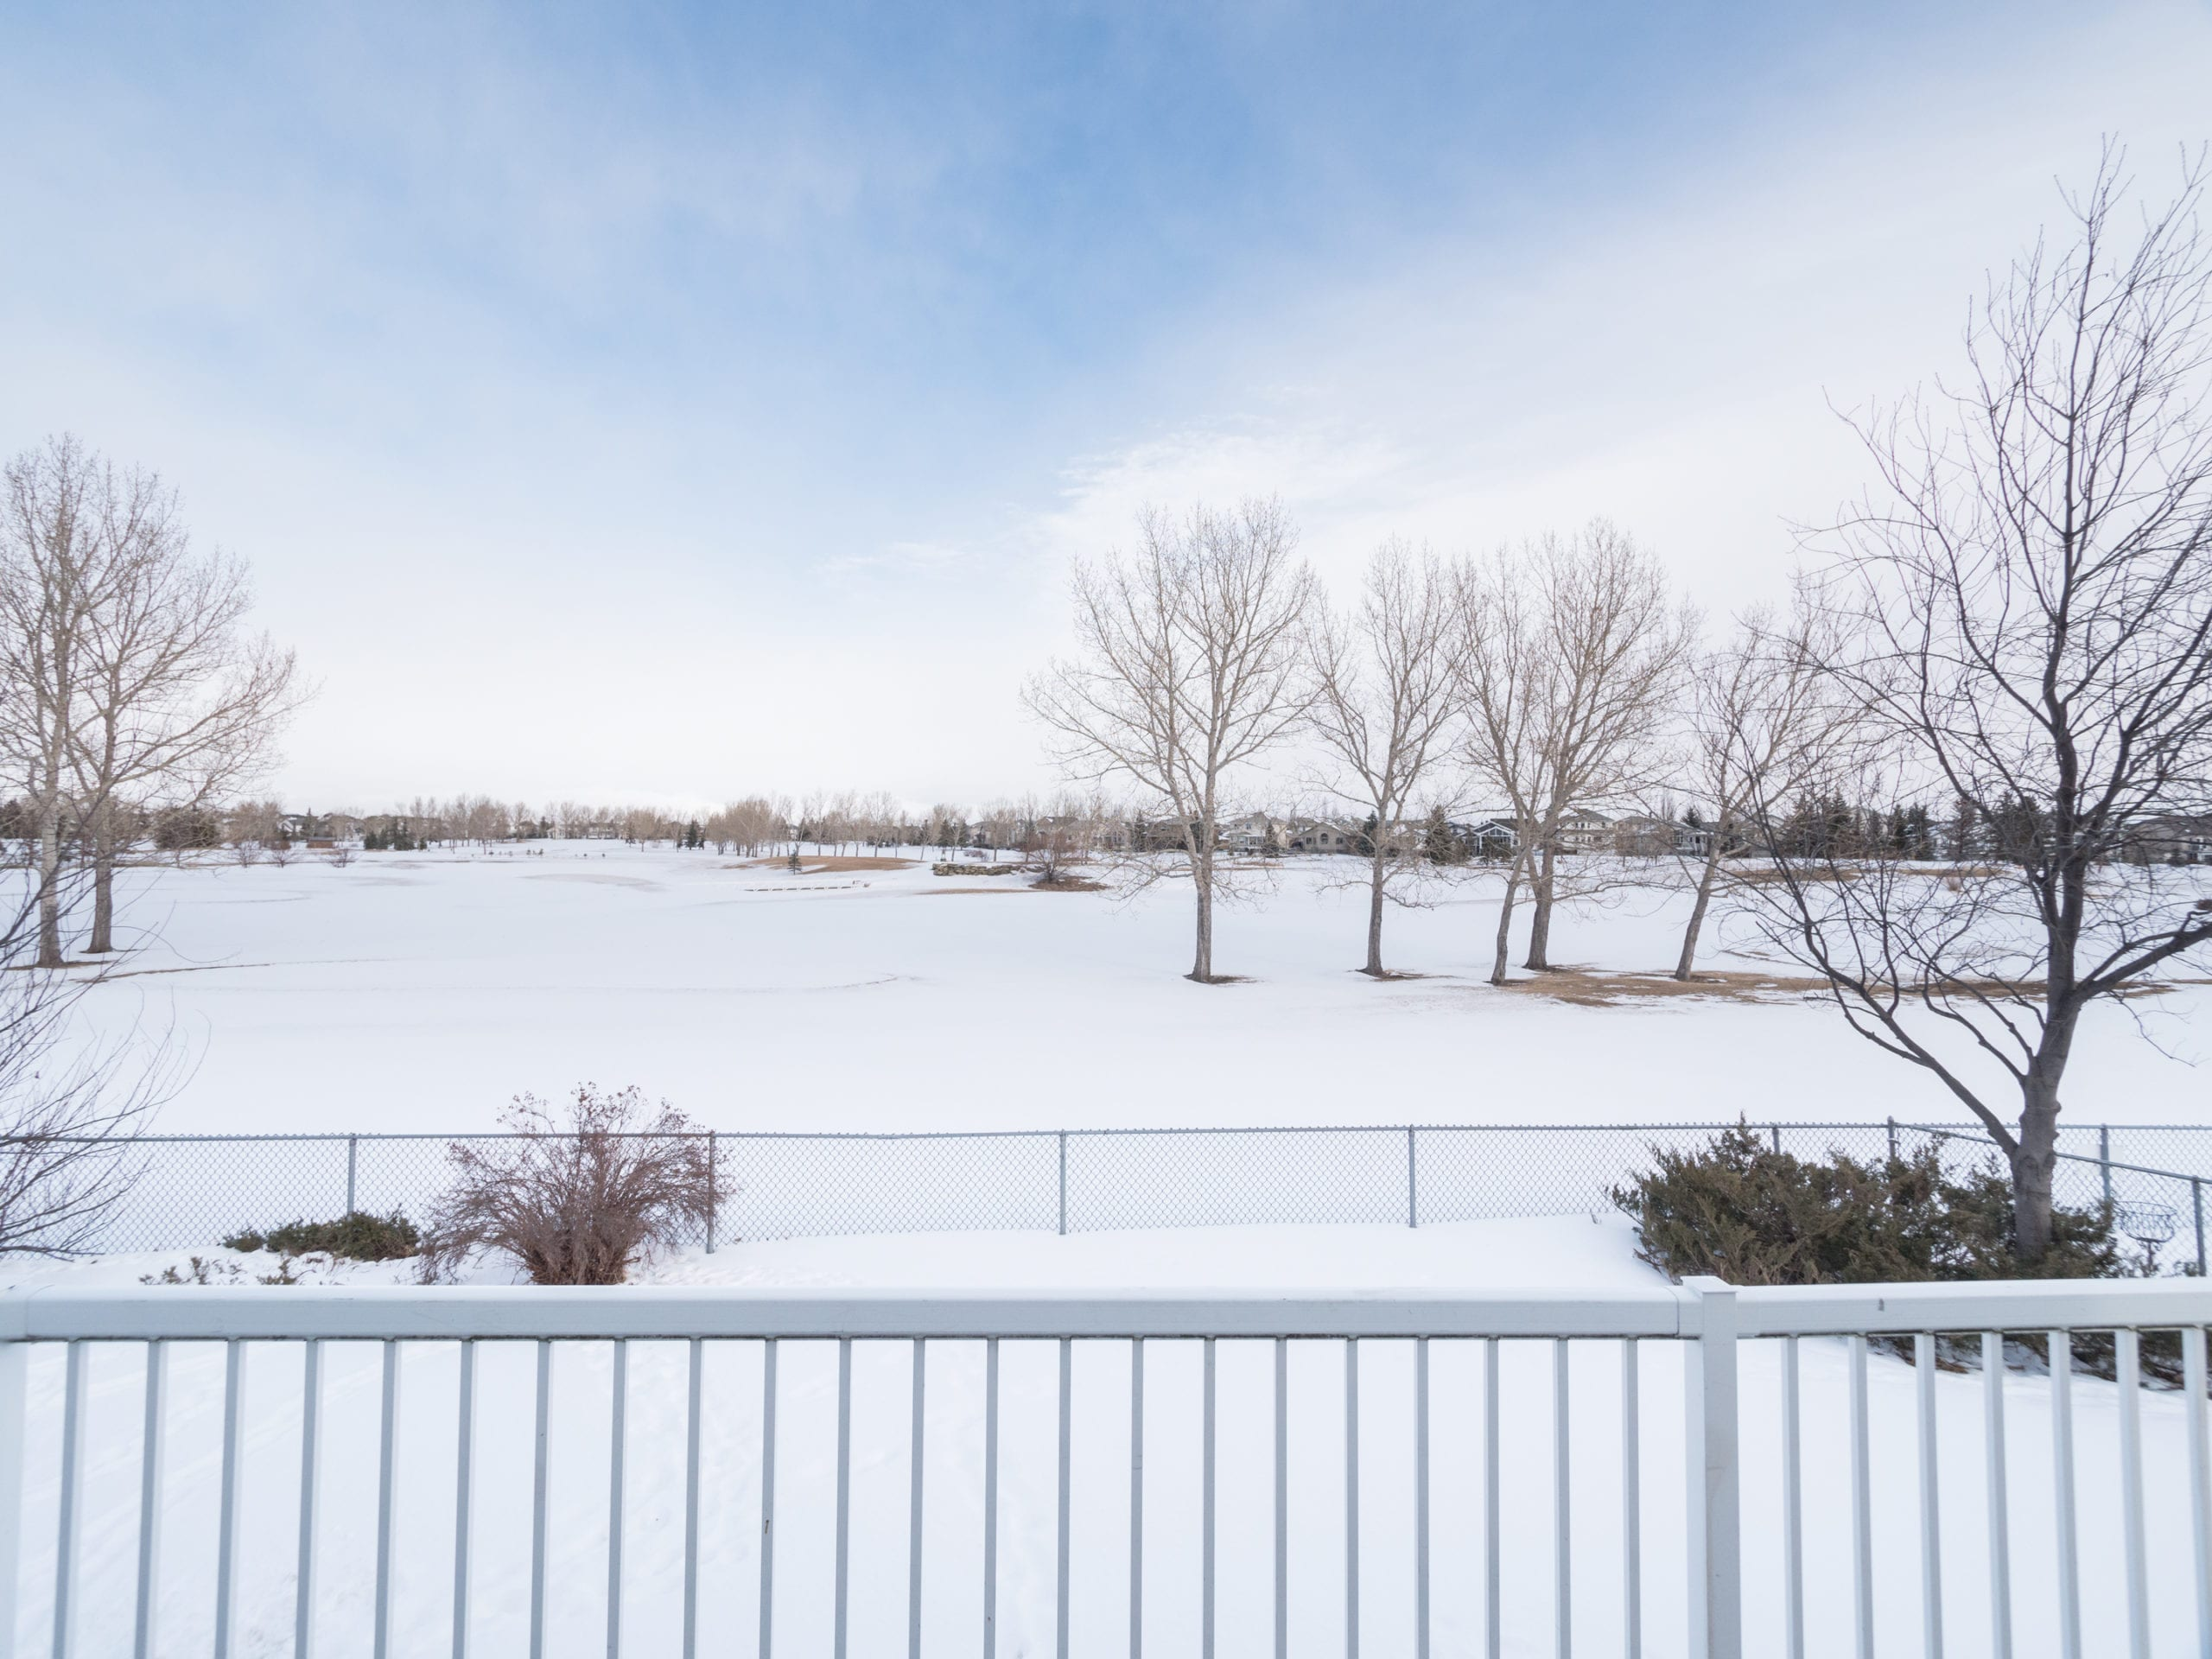 Hello Gorgeous - 143 Woodside Road NW, Airdrie AB. - Tara Molina Real Estate (13 of 54)